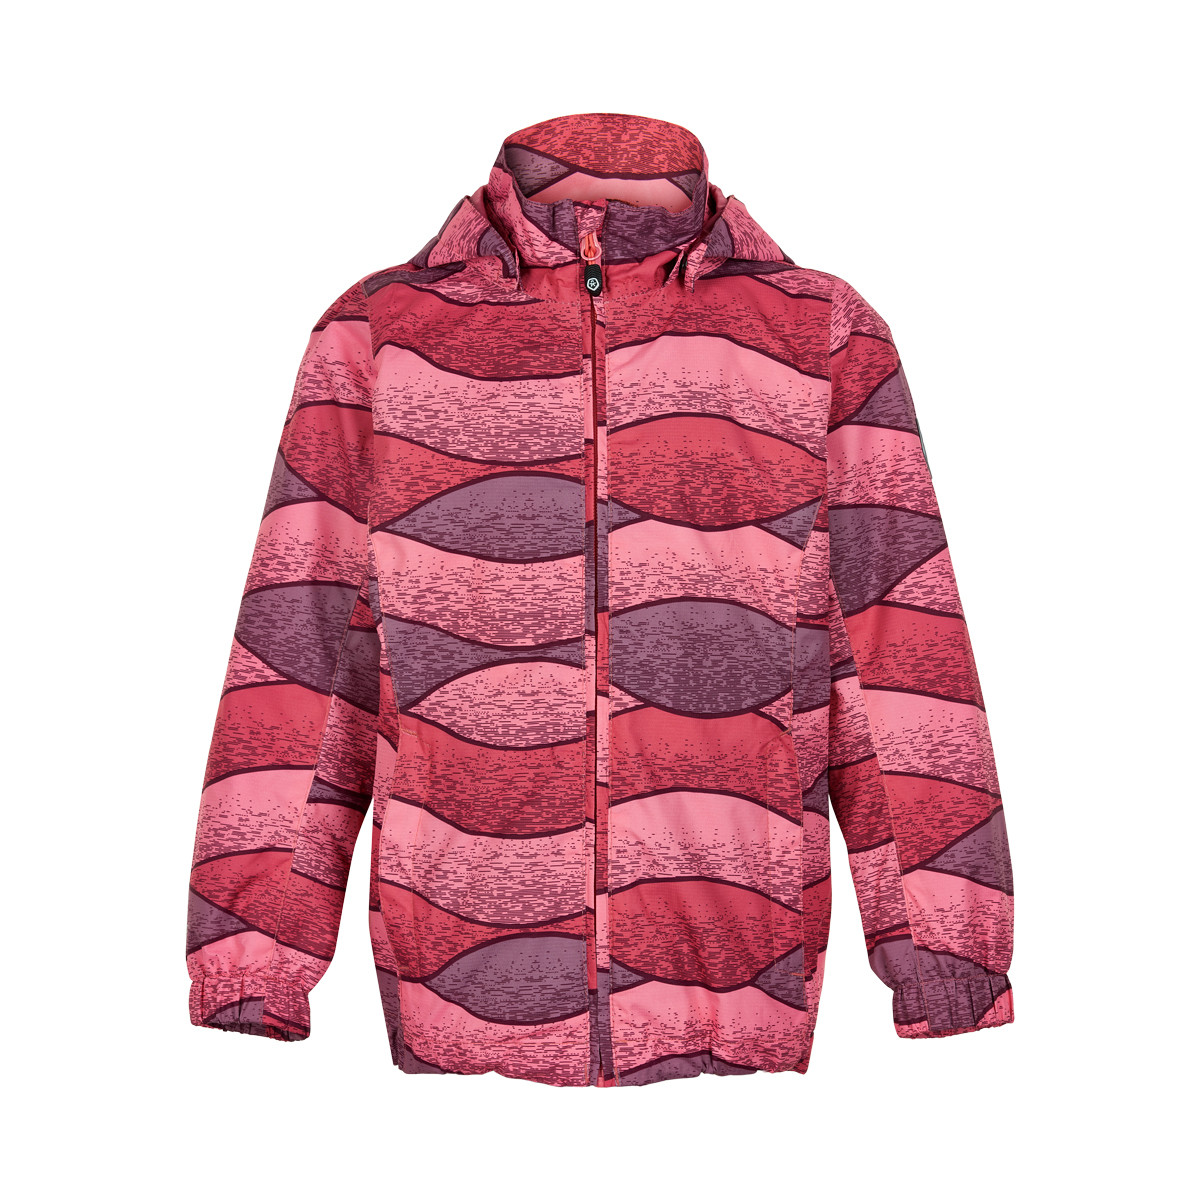 Color Kids Elisabeth Jkt. - Kinder Regenjacke desert rose